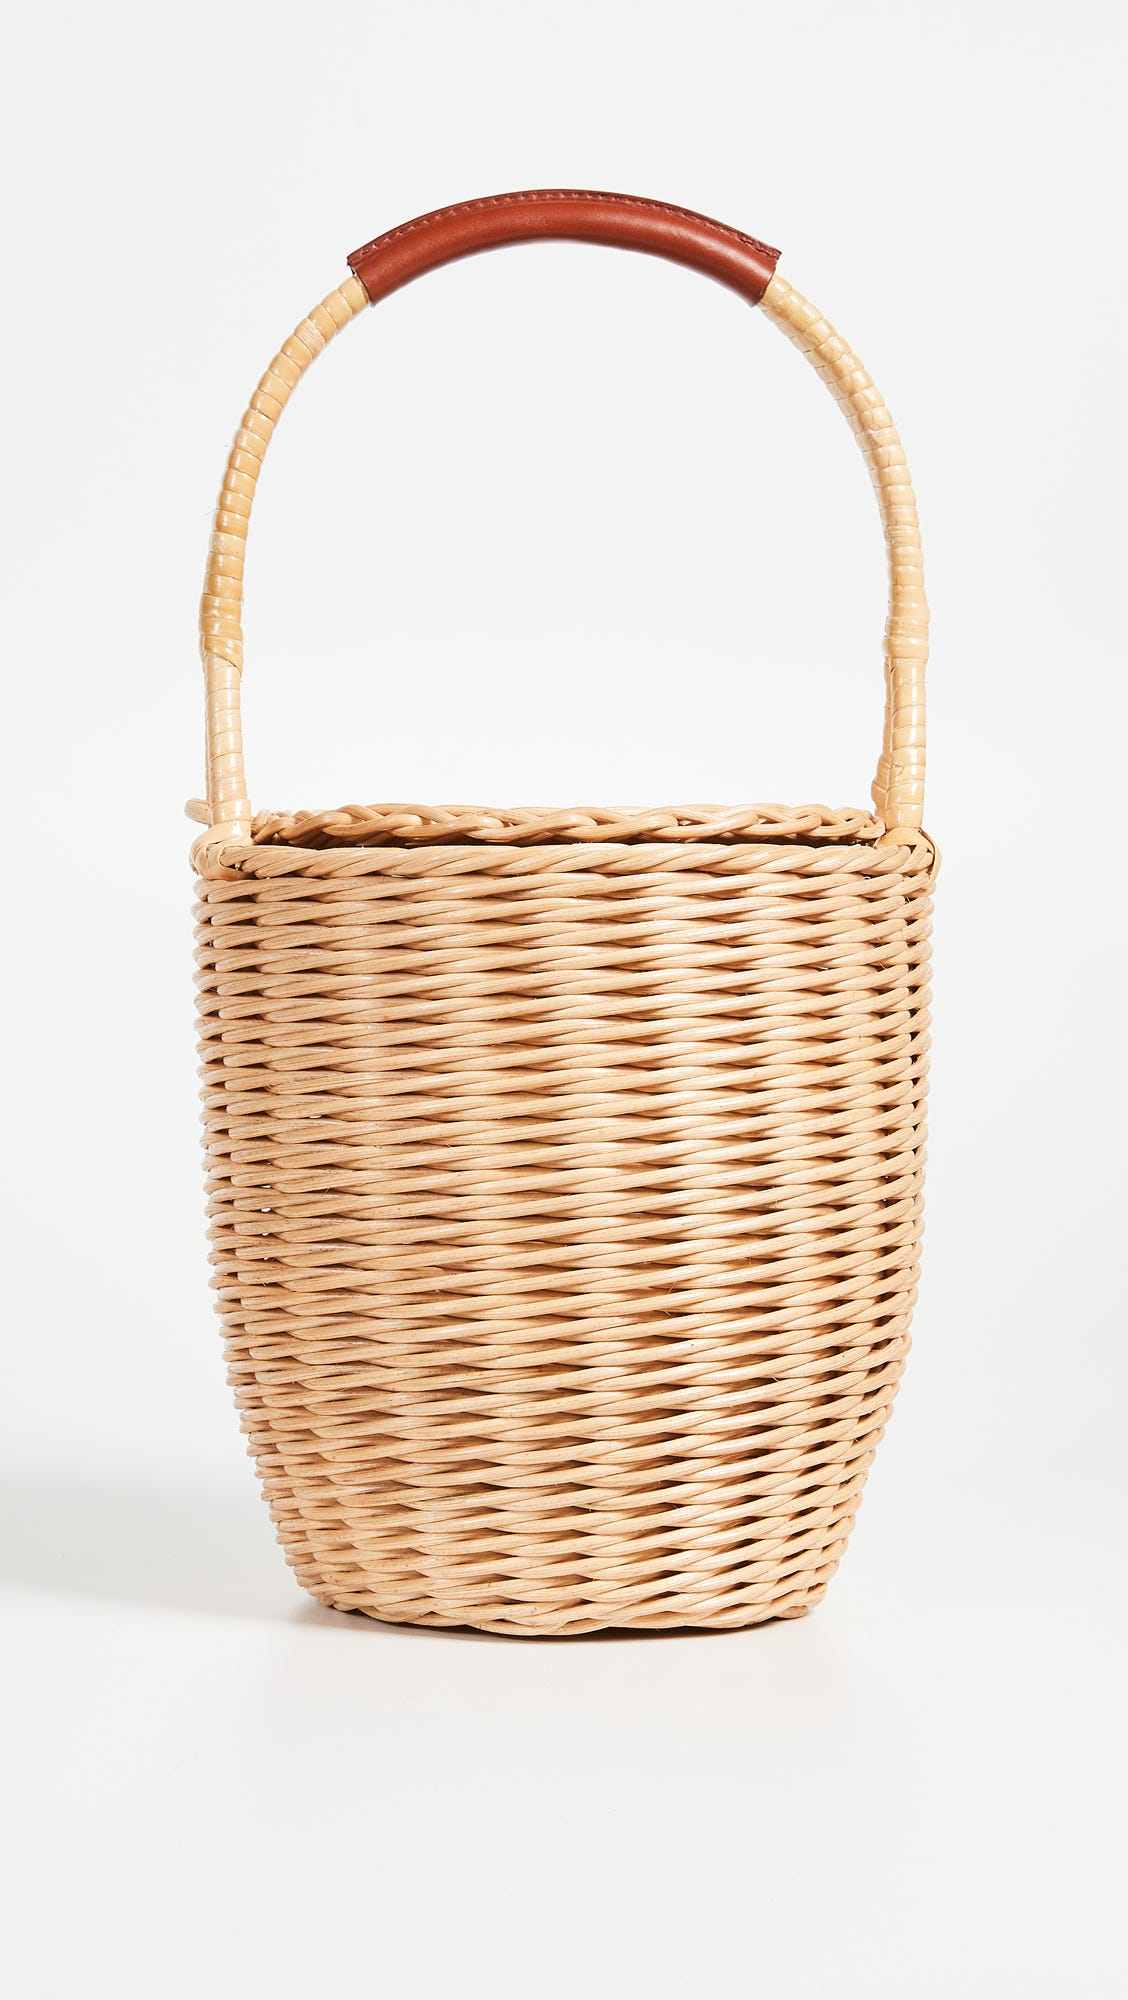 17 Basket Bags We're Very Into RightNow recommend